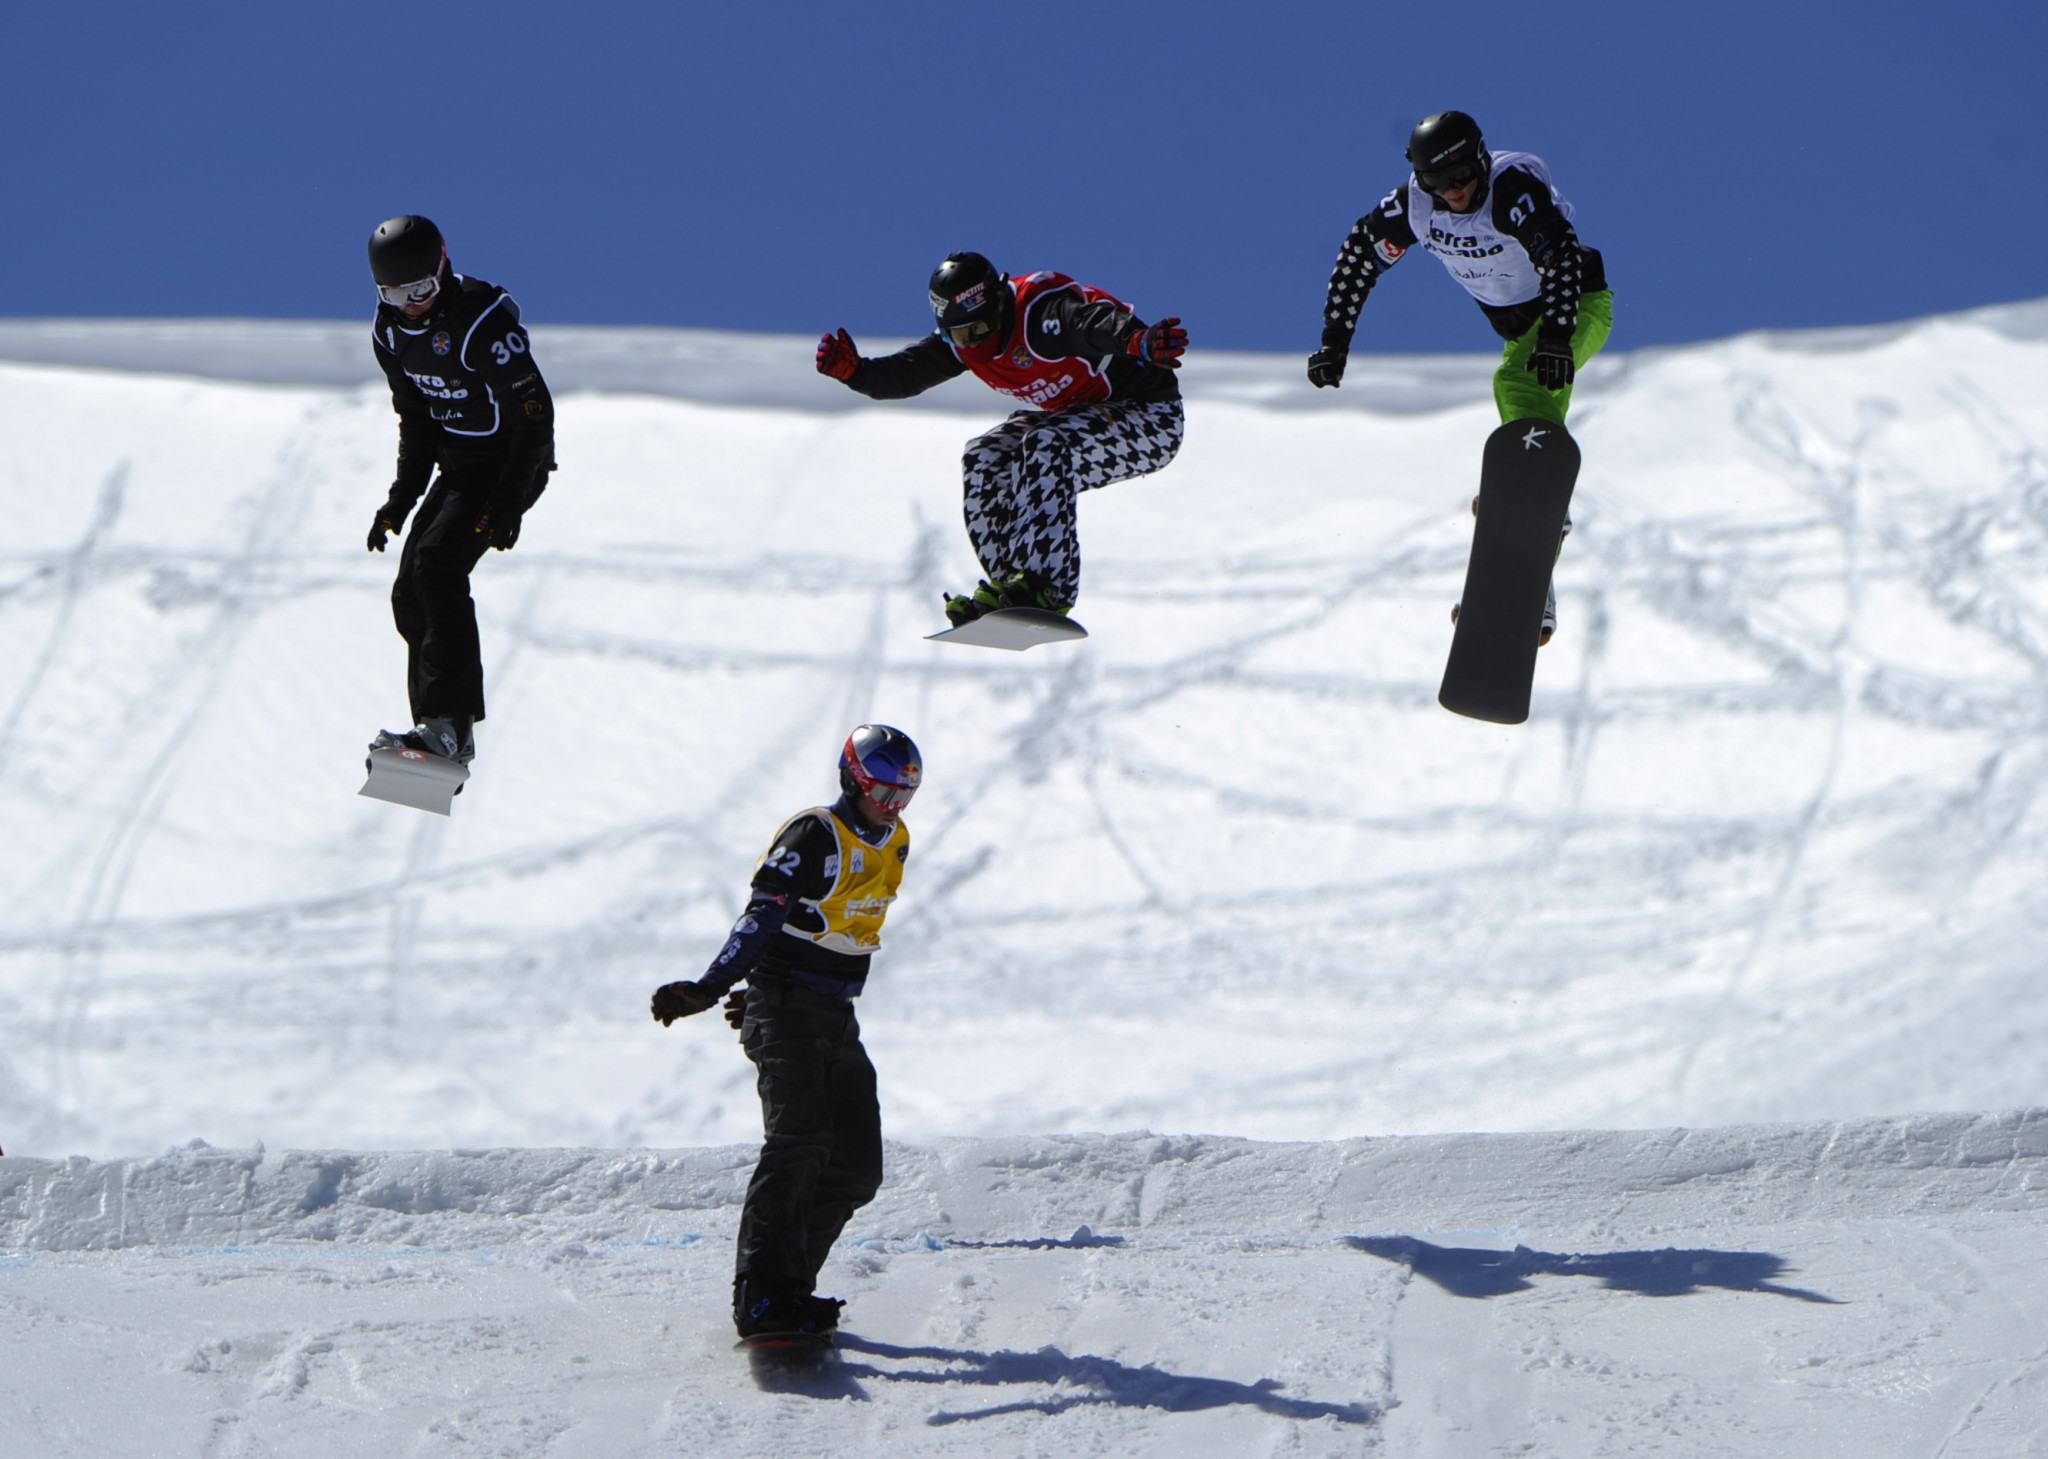 Snowboard disciplines will also be covered in the latest judging education courses ©Getty Images